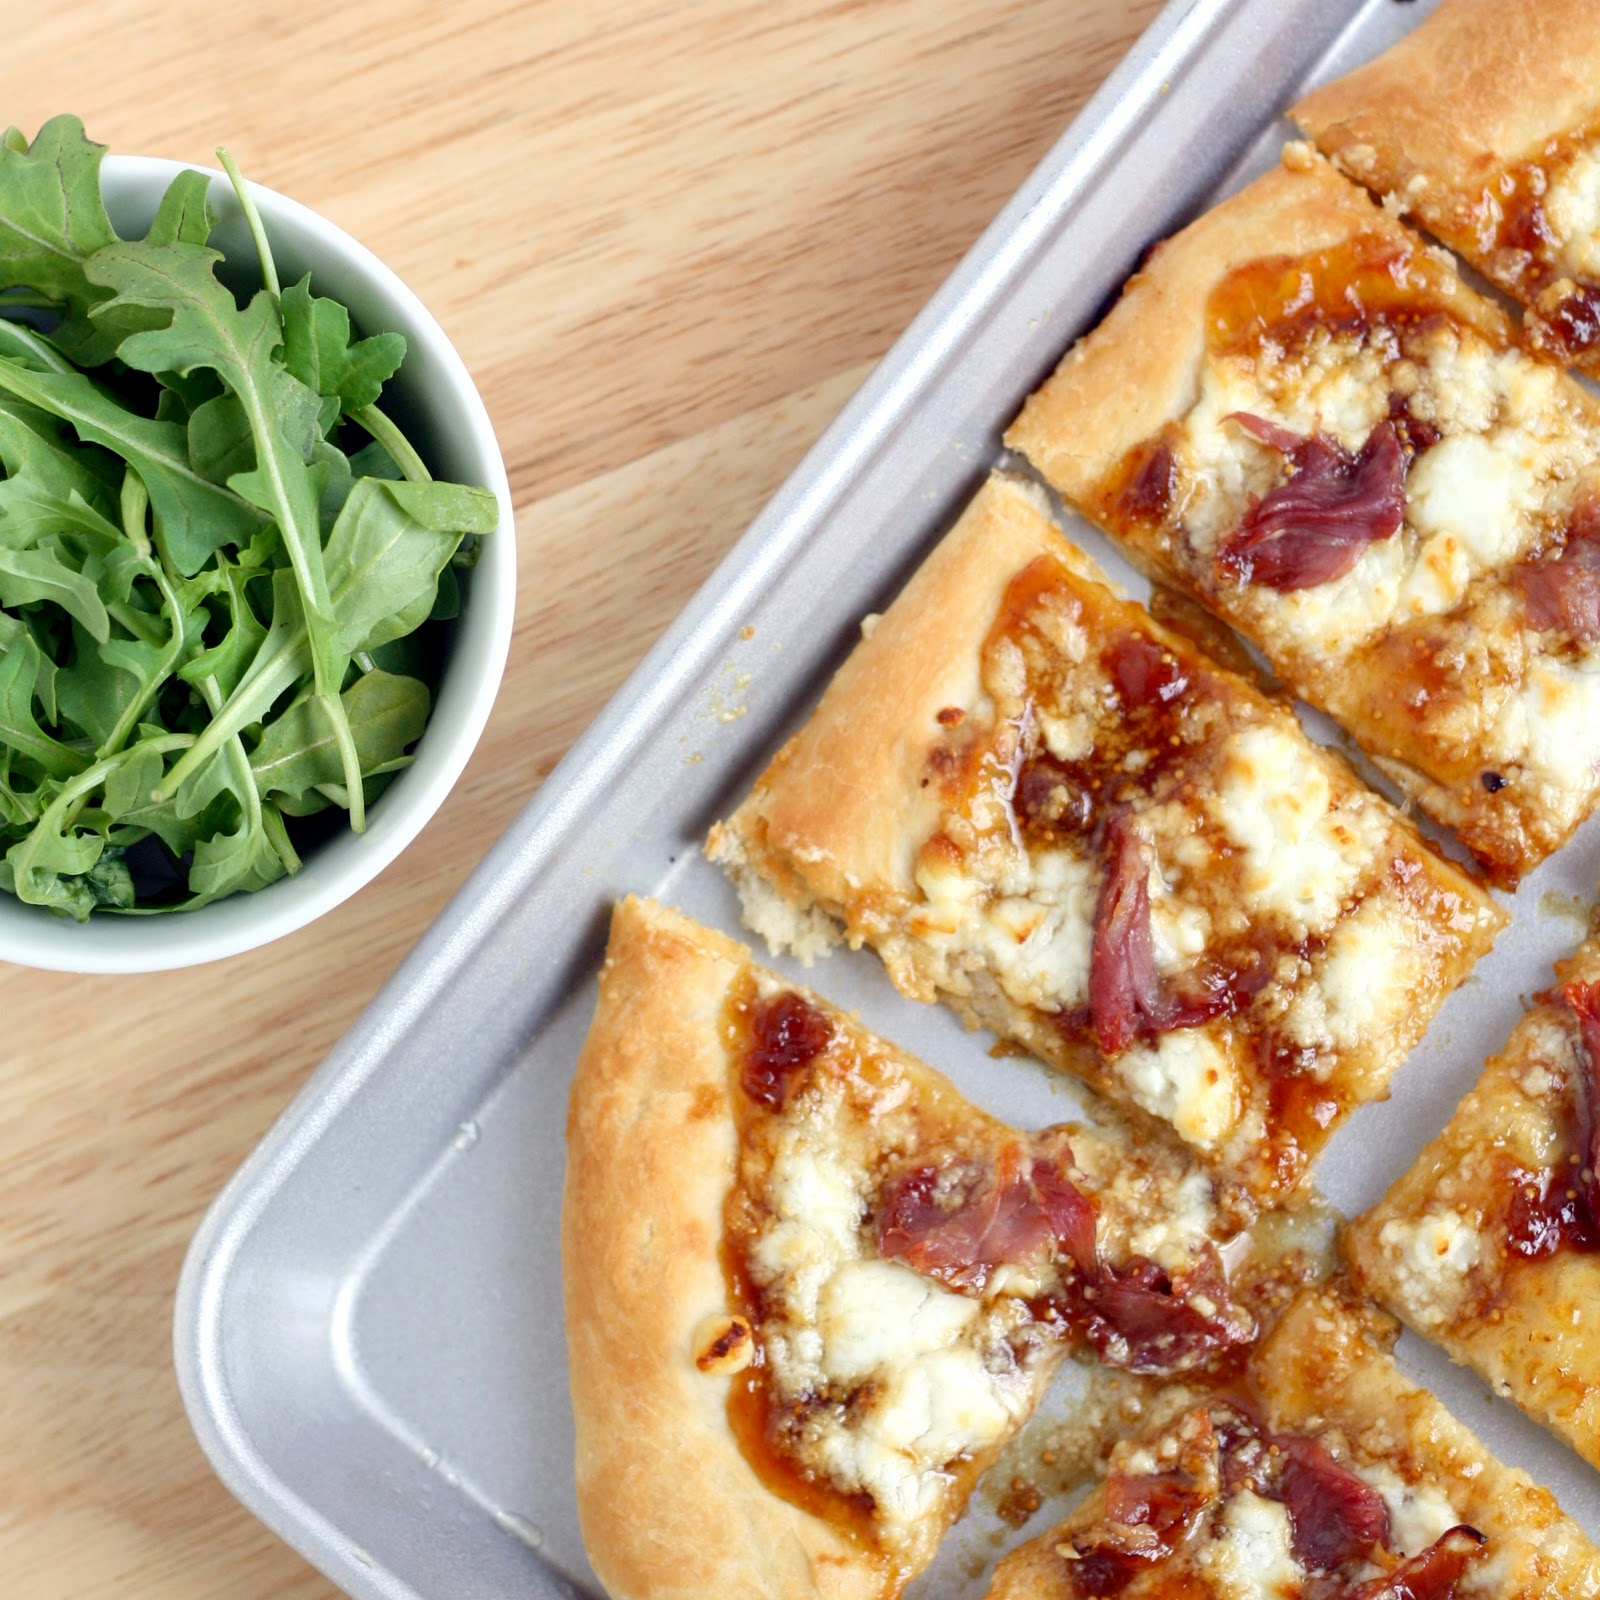 ... ' Kitchen: Goat Cheese and Prosciutto Pizza with Fig Jam and Arugula